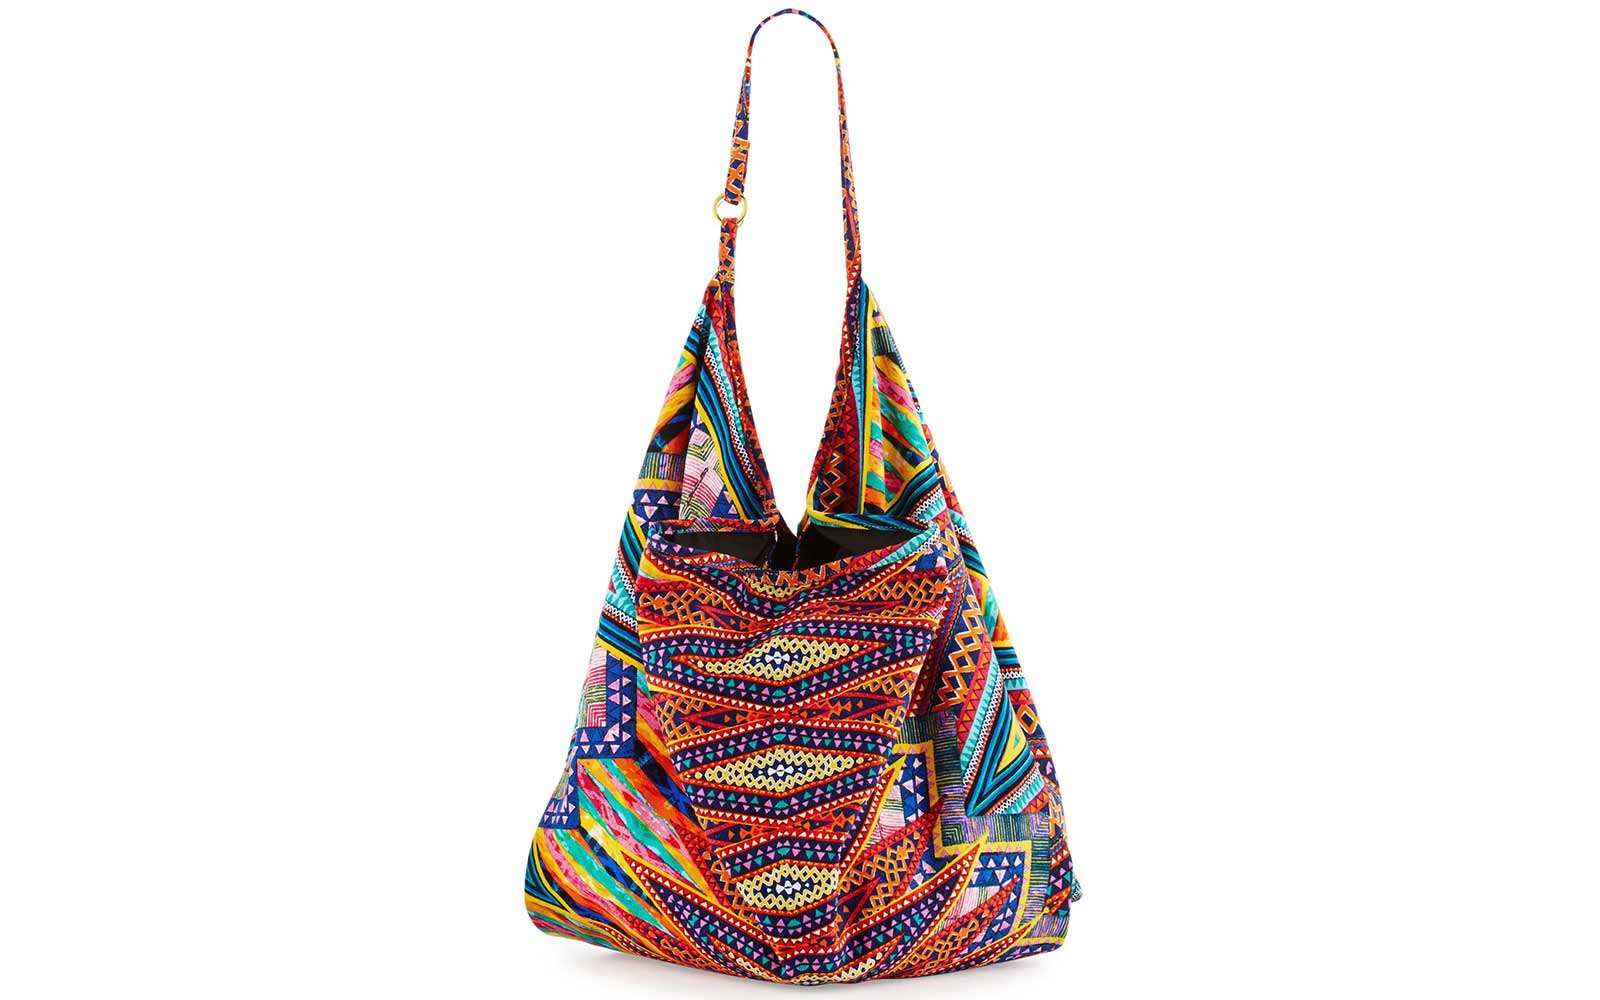 5daf91eed Stylish and Sturdy Beach Bags You Can Use As a Carry-on | Travel + ...